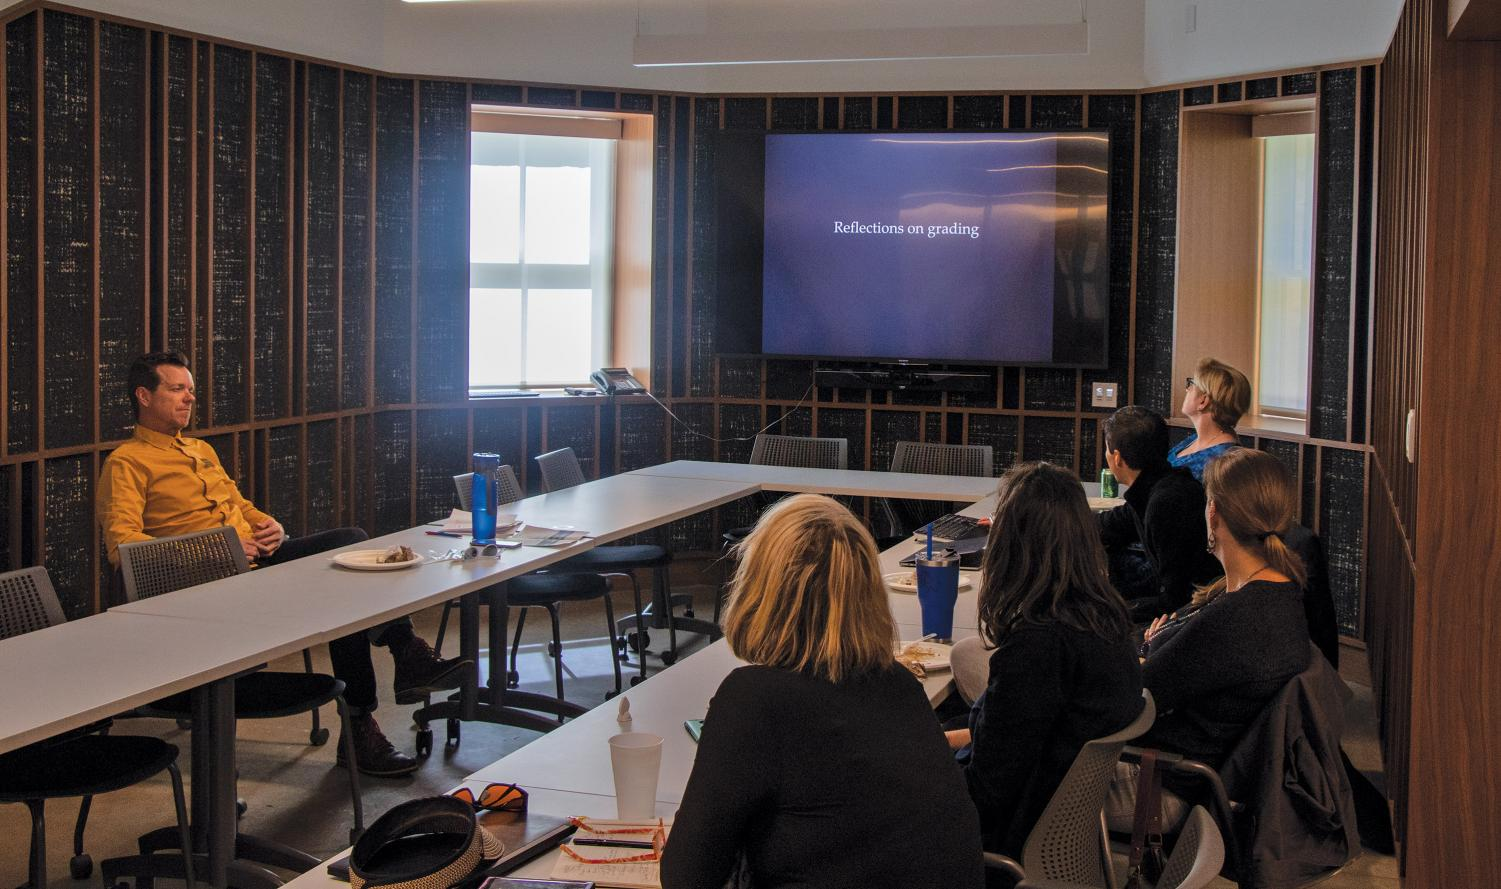 Professors gathered for a panel on inclusivity in grading on Friday Feb. 8. Among those in attendance were Kris Sloan, Santiago Toledo and others.